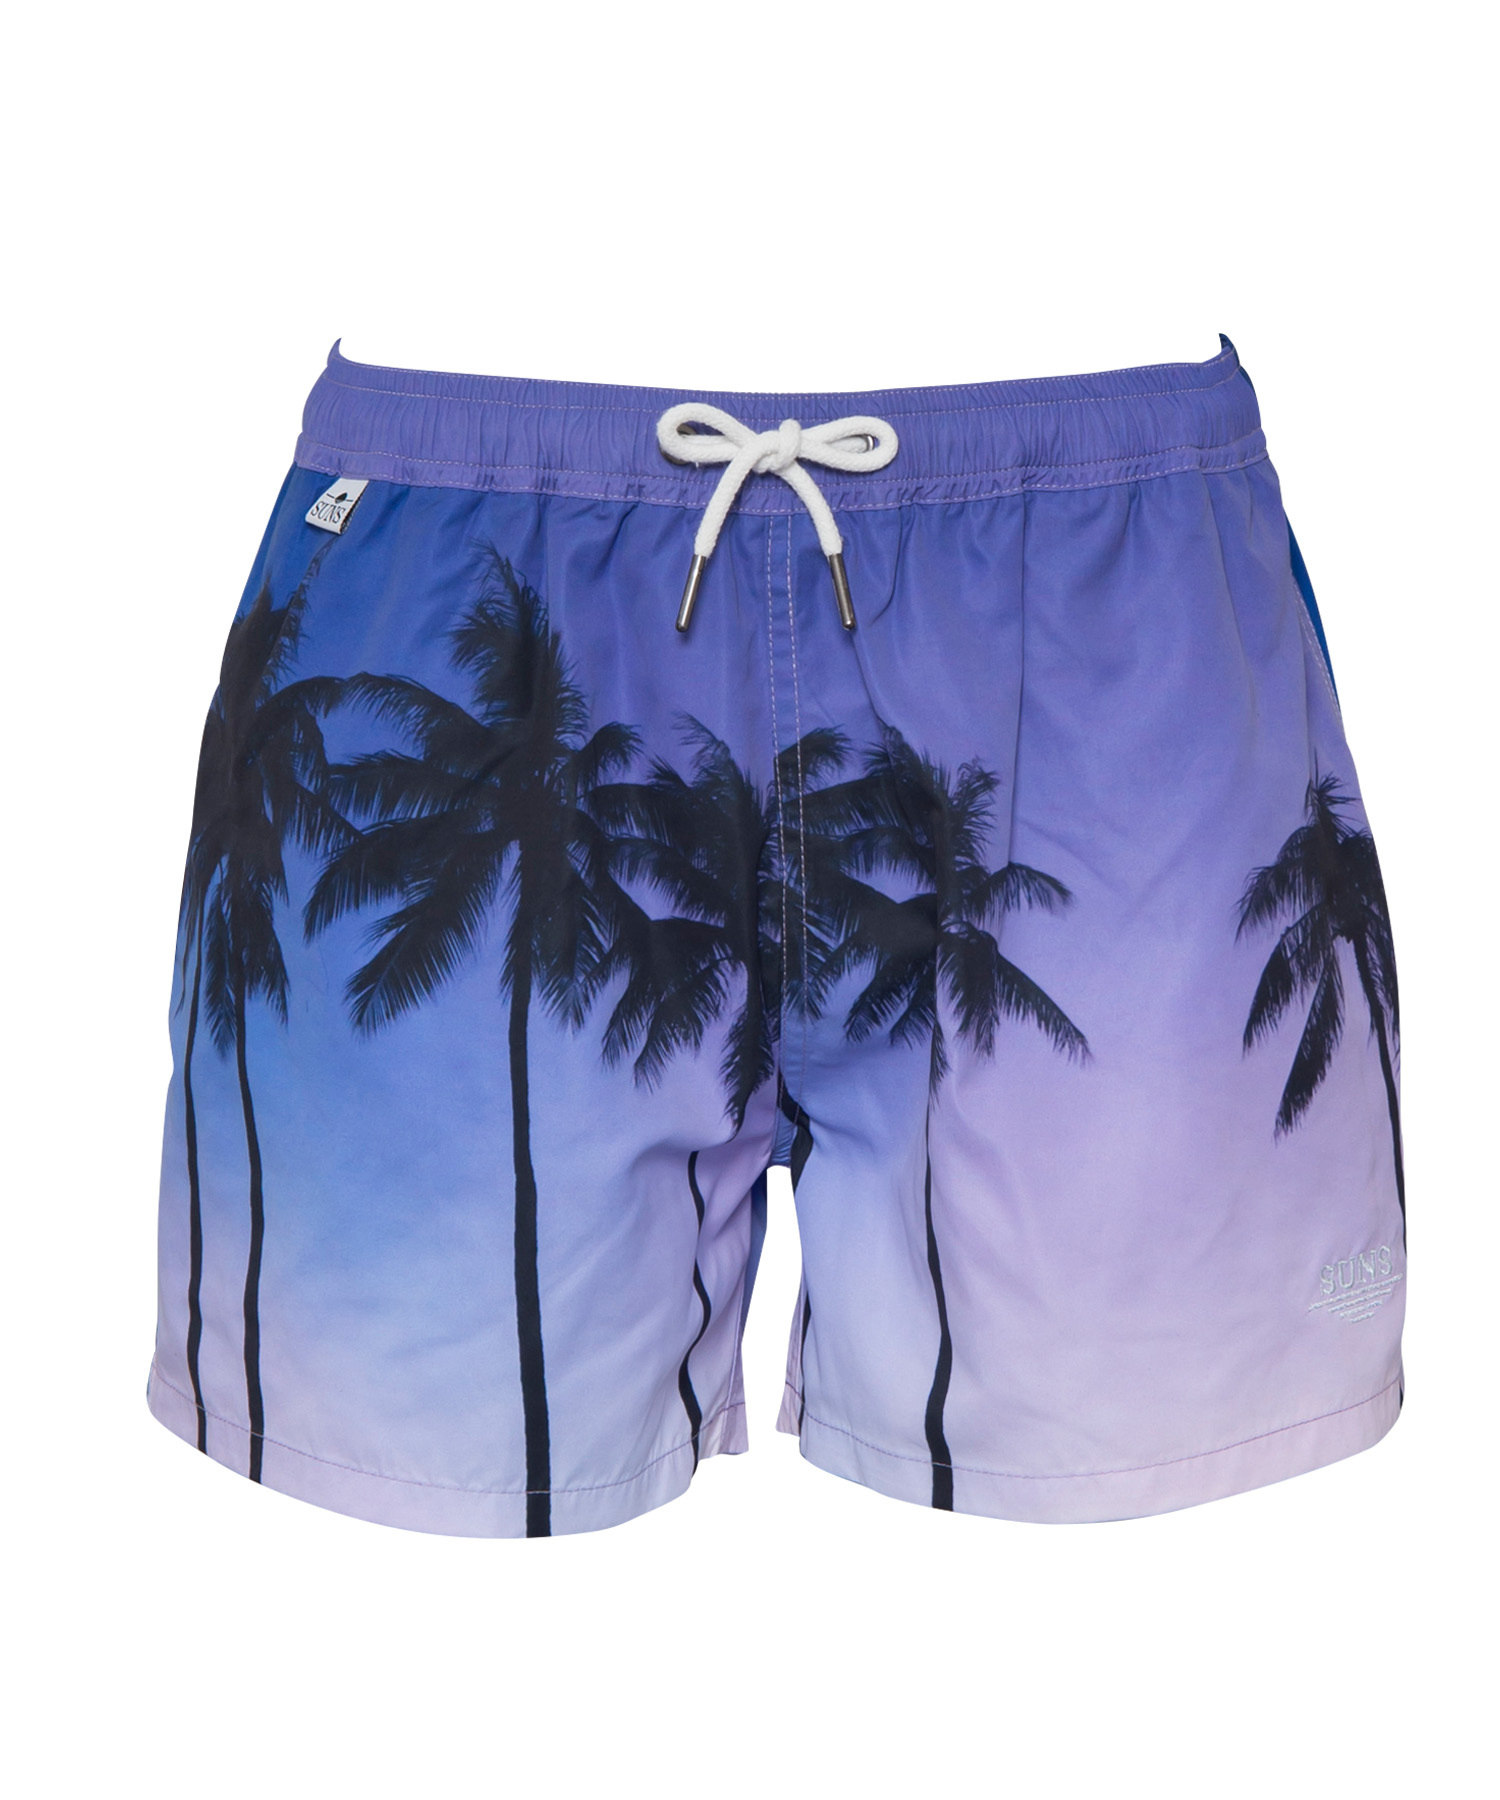 SUNS SUNSET PHOTO SWIM SHORTS[RSW018]